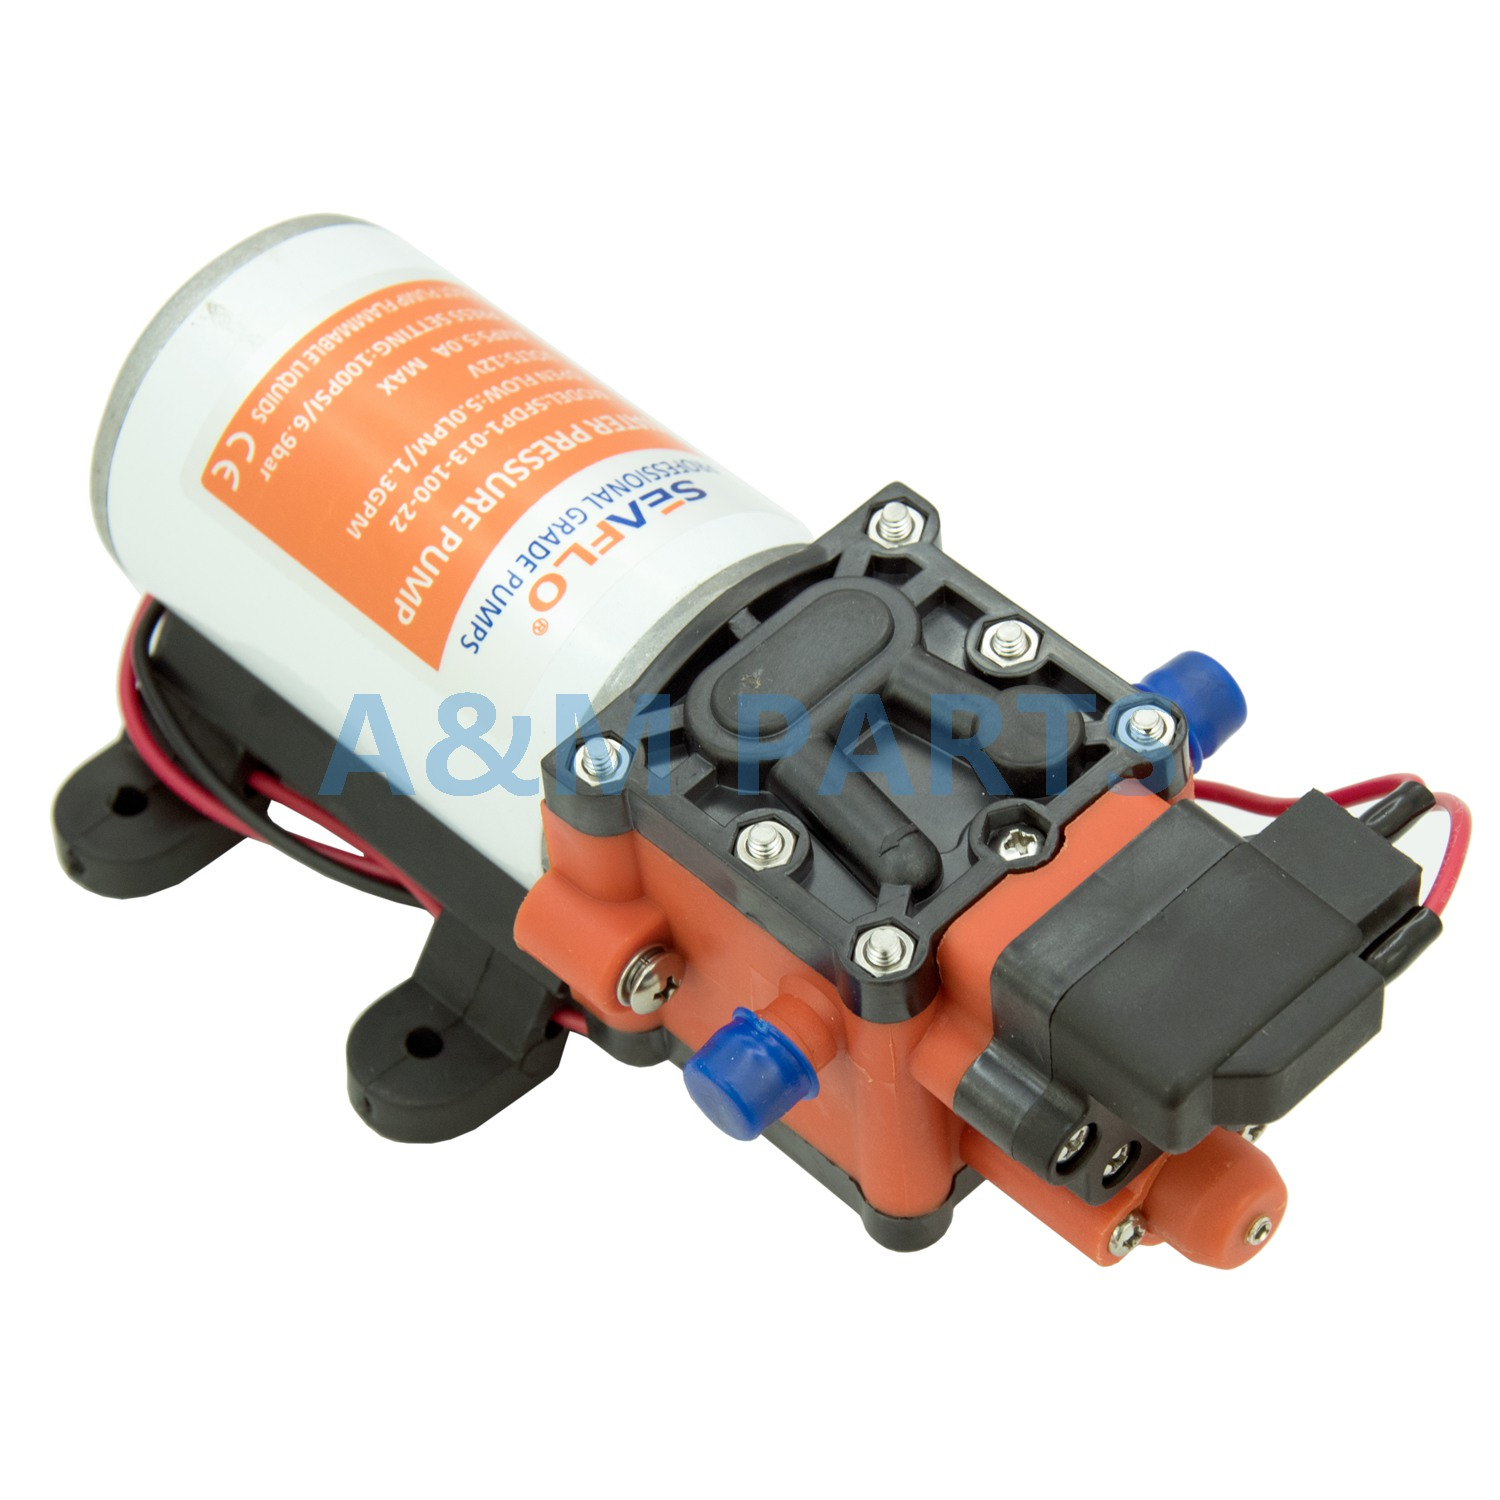 12V 100 PSI 1.3 GPM Diaphragm Pump Boat Marine RV Self Priming Water Pump